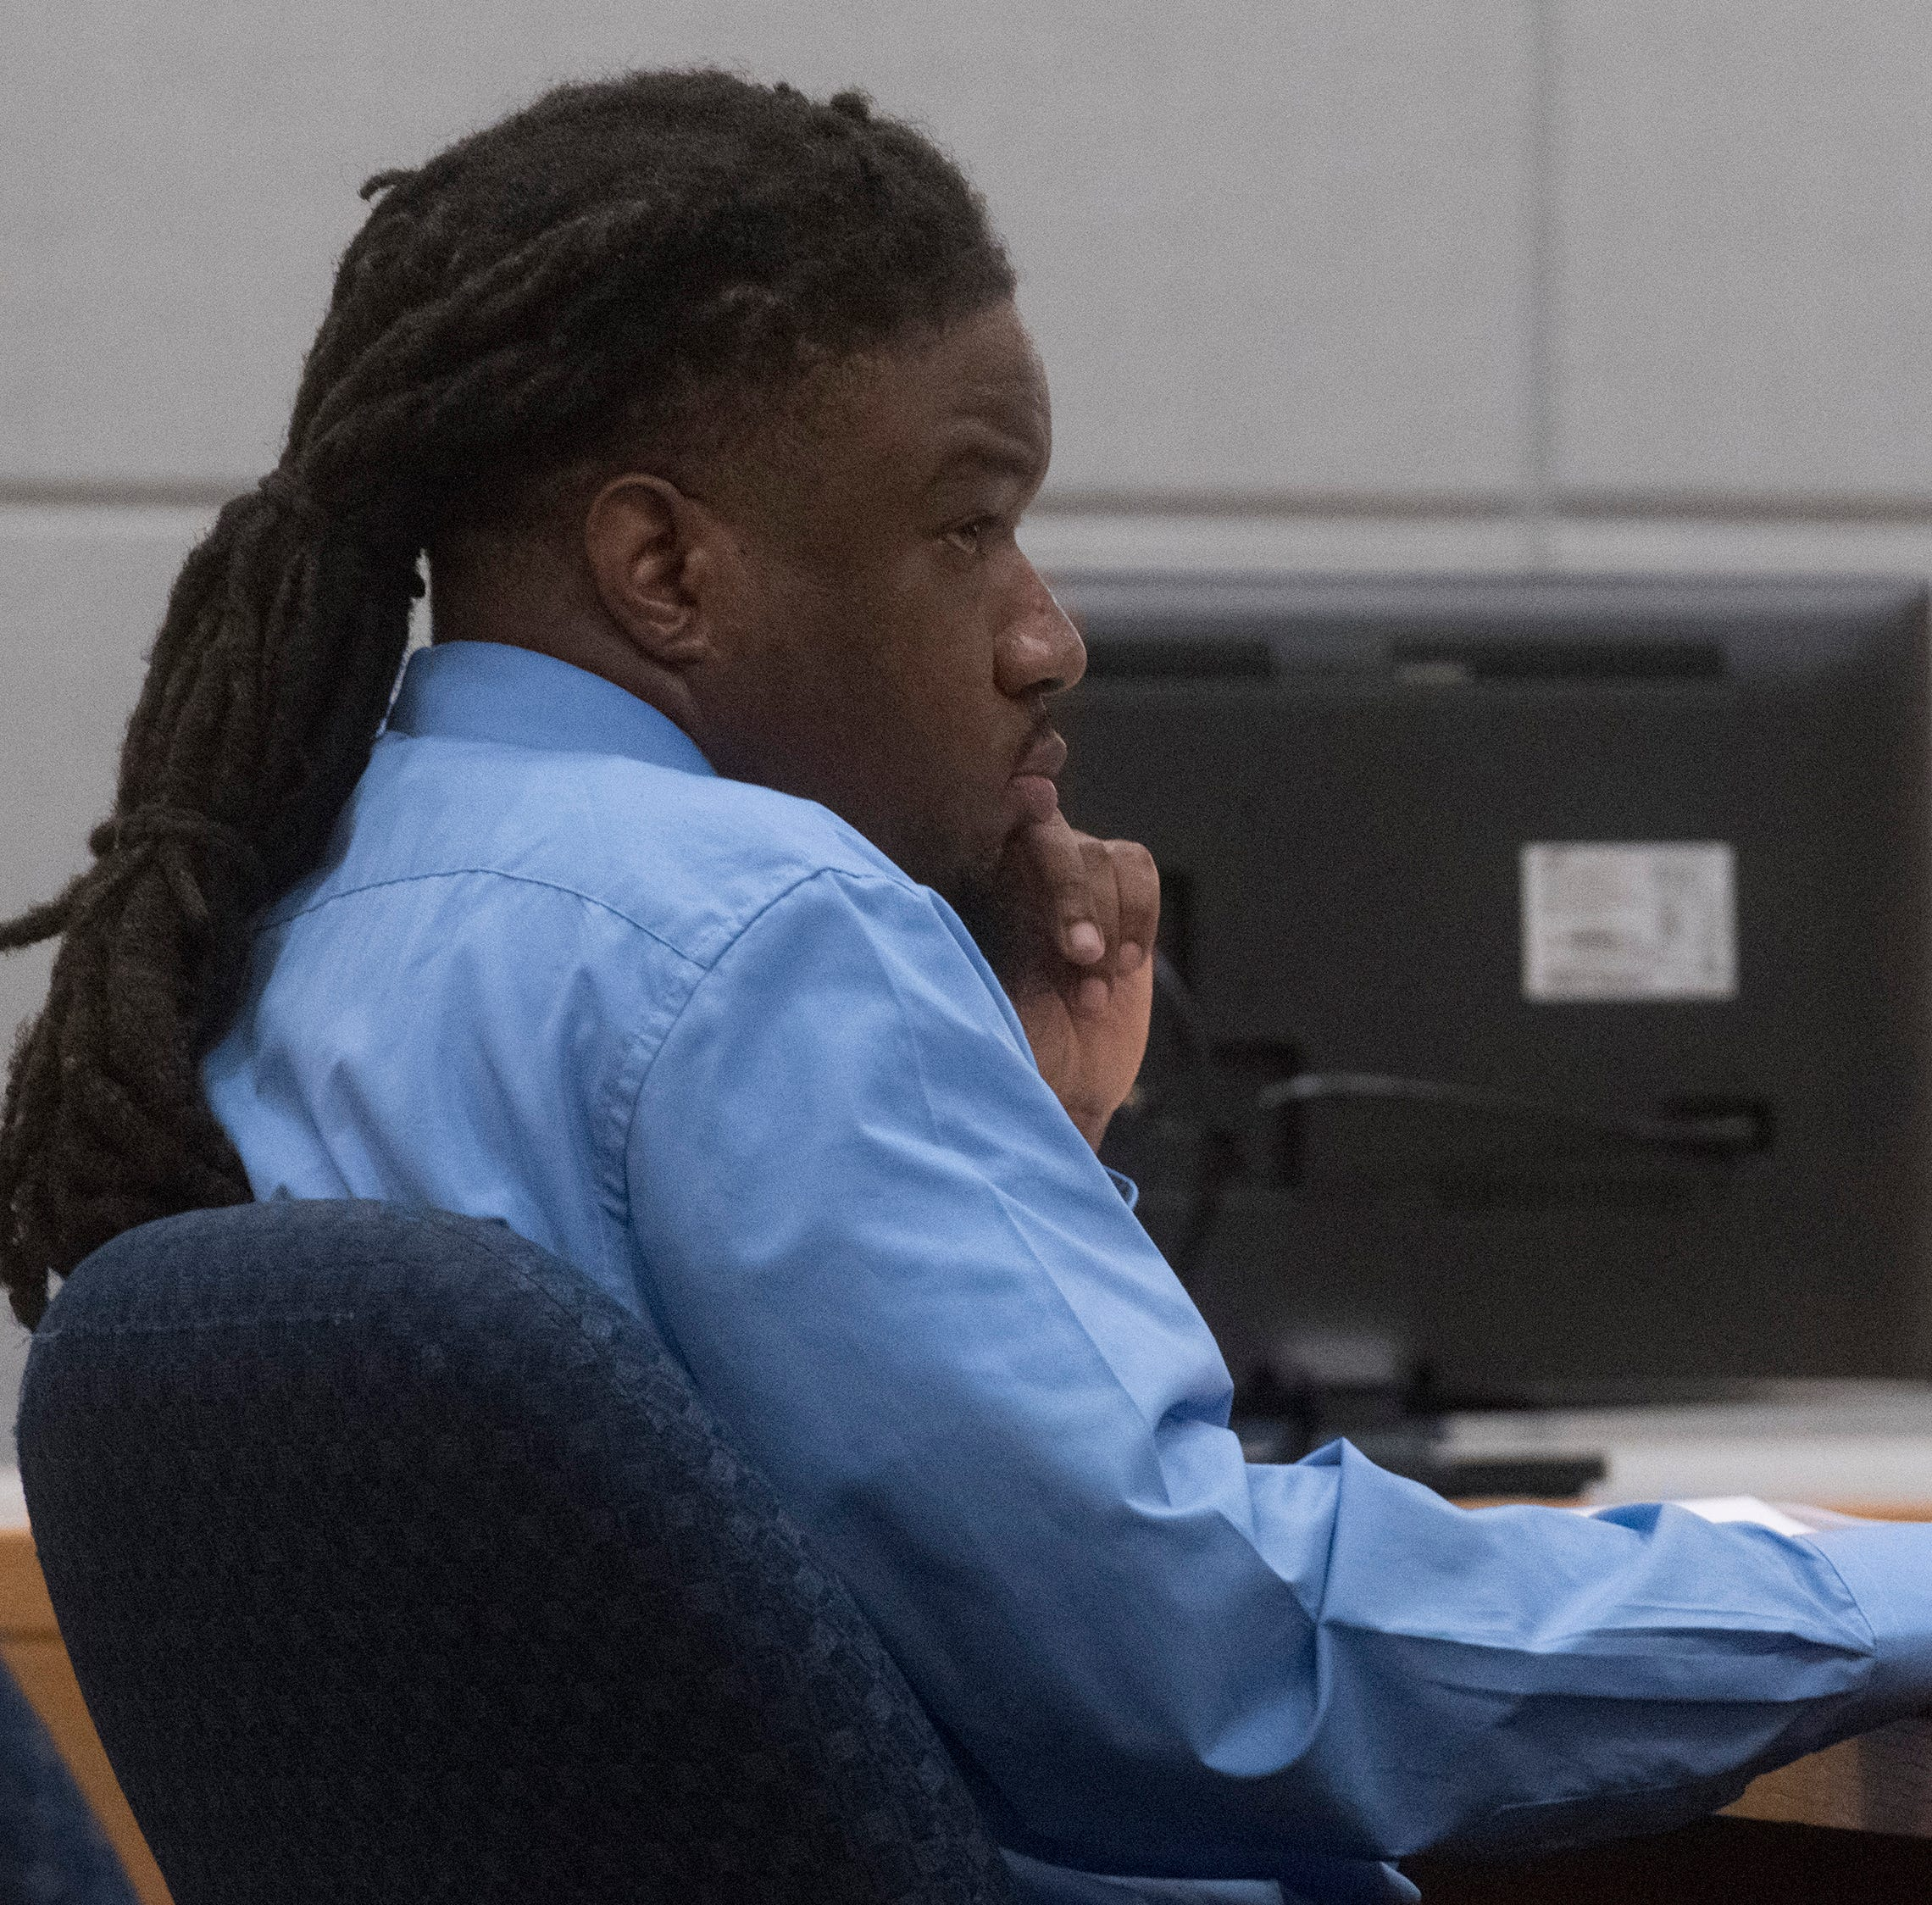 BREAKING: Pensacola man found not guilty of kidnapping and rape